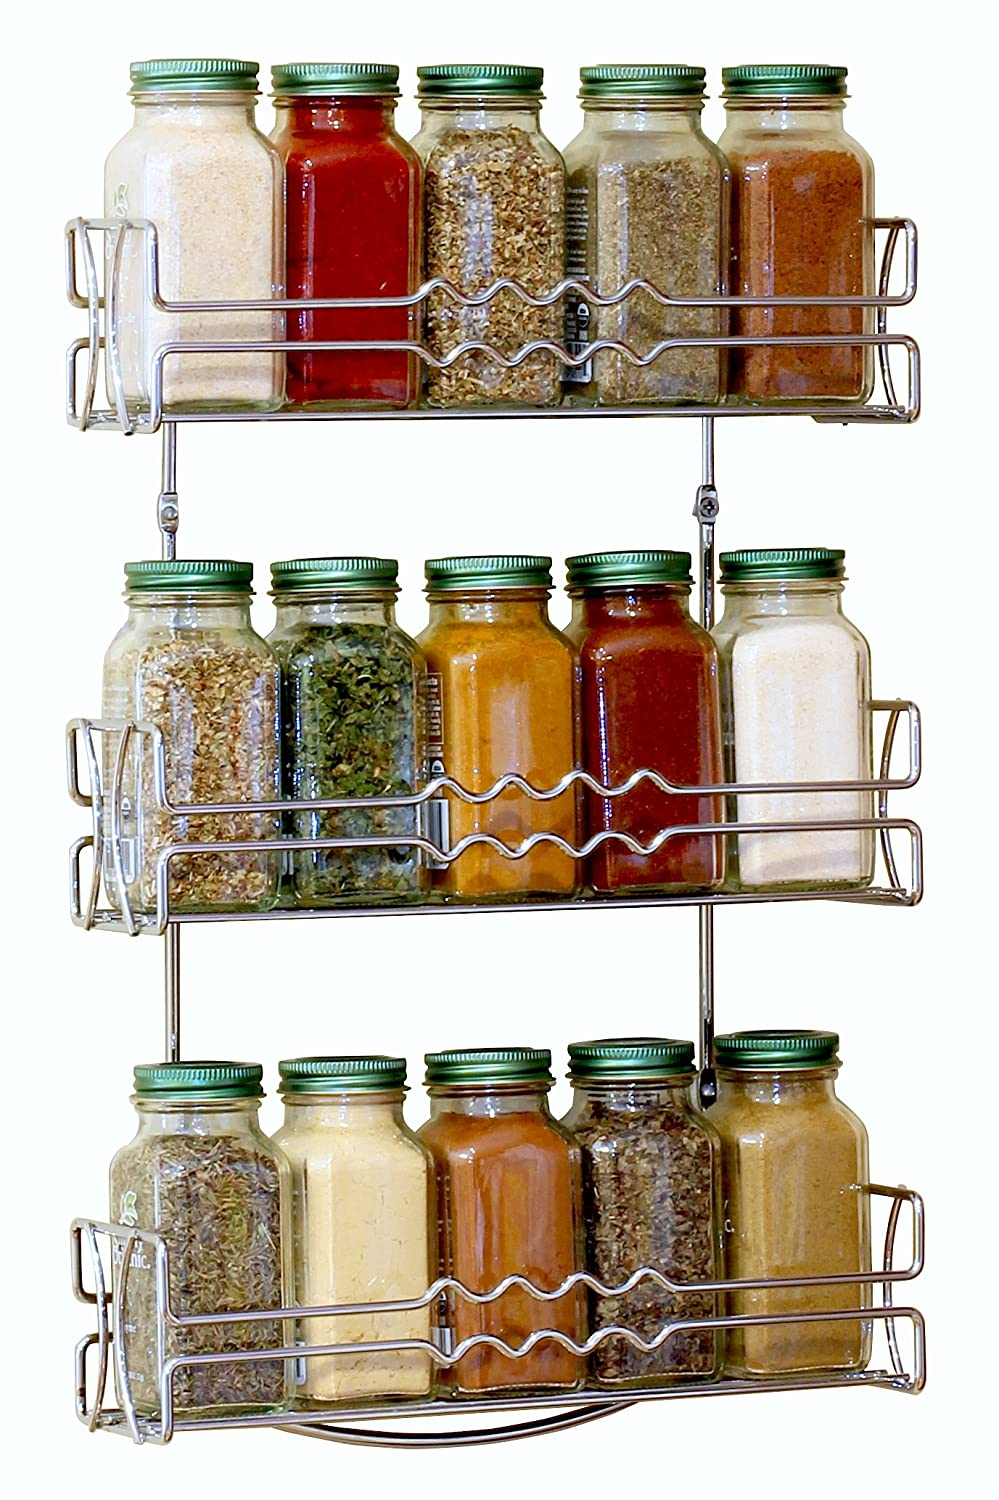 Kitchen Wall Mounted Racks Spice Racks Amp Pot Racks